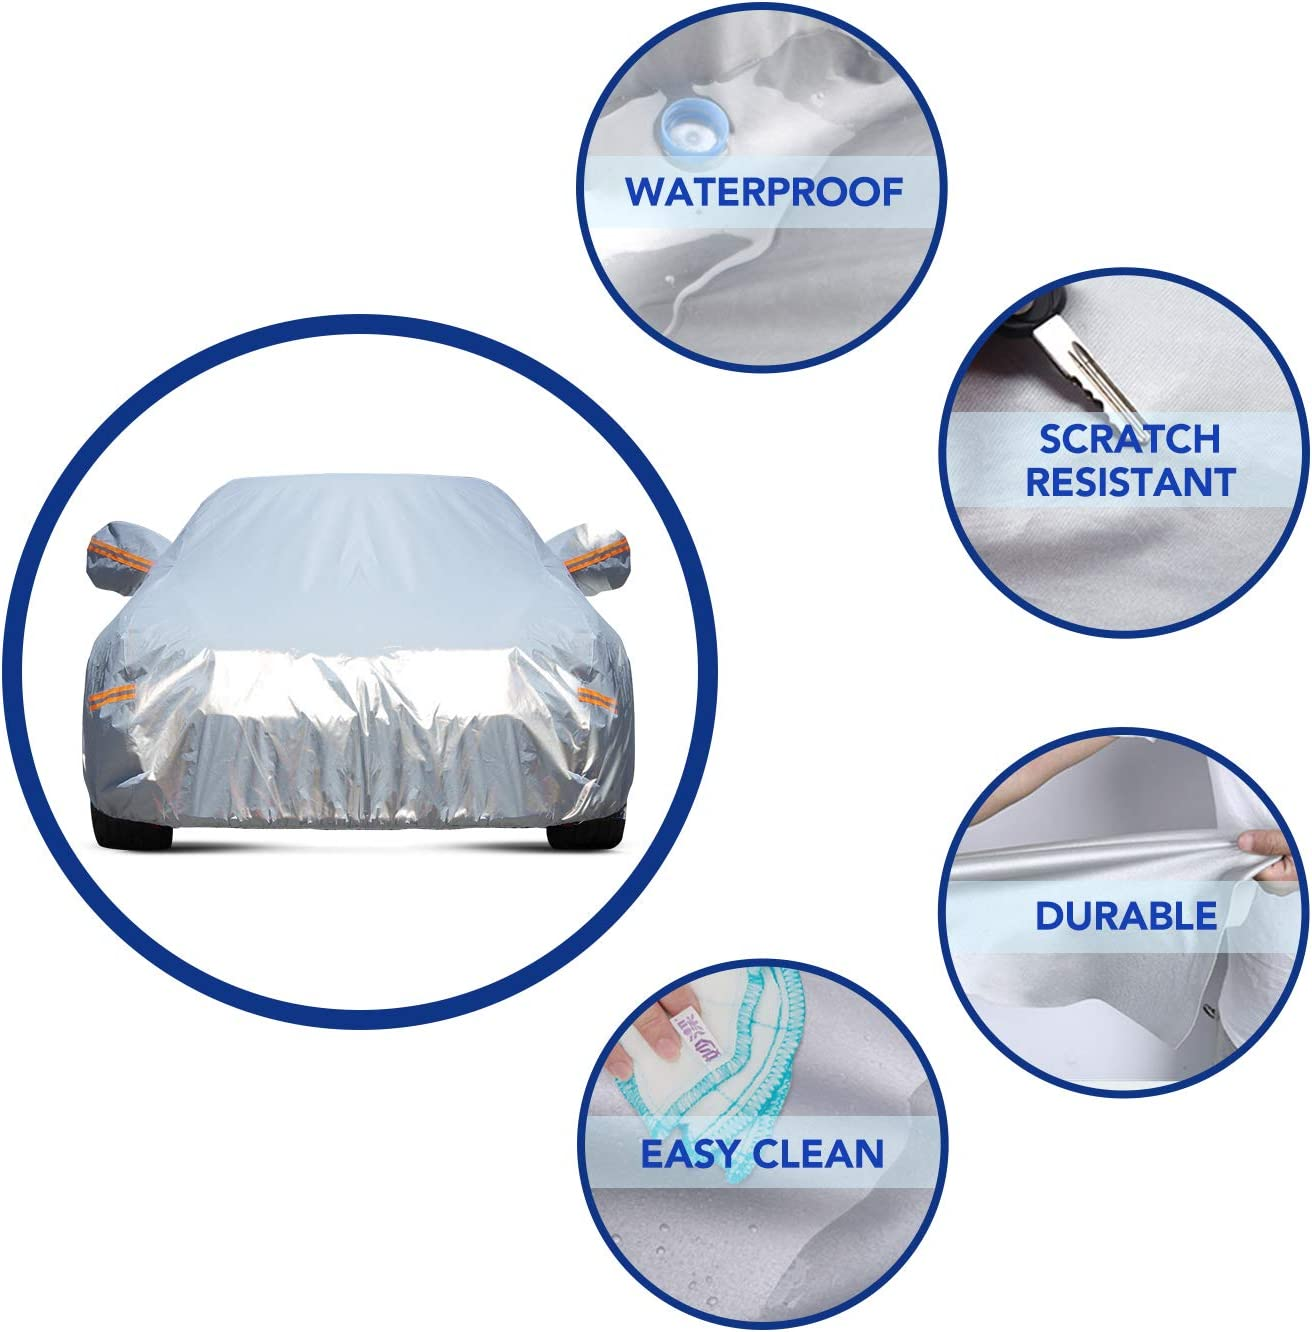 186-193 TWING Car Cover Universal Full Car Covers for Automobiles Waterproof Windproof All Weather Scratch Resistant Outdoor UV Protection with Adjustable Straps for Sedan Fits up to 193/'/'